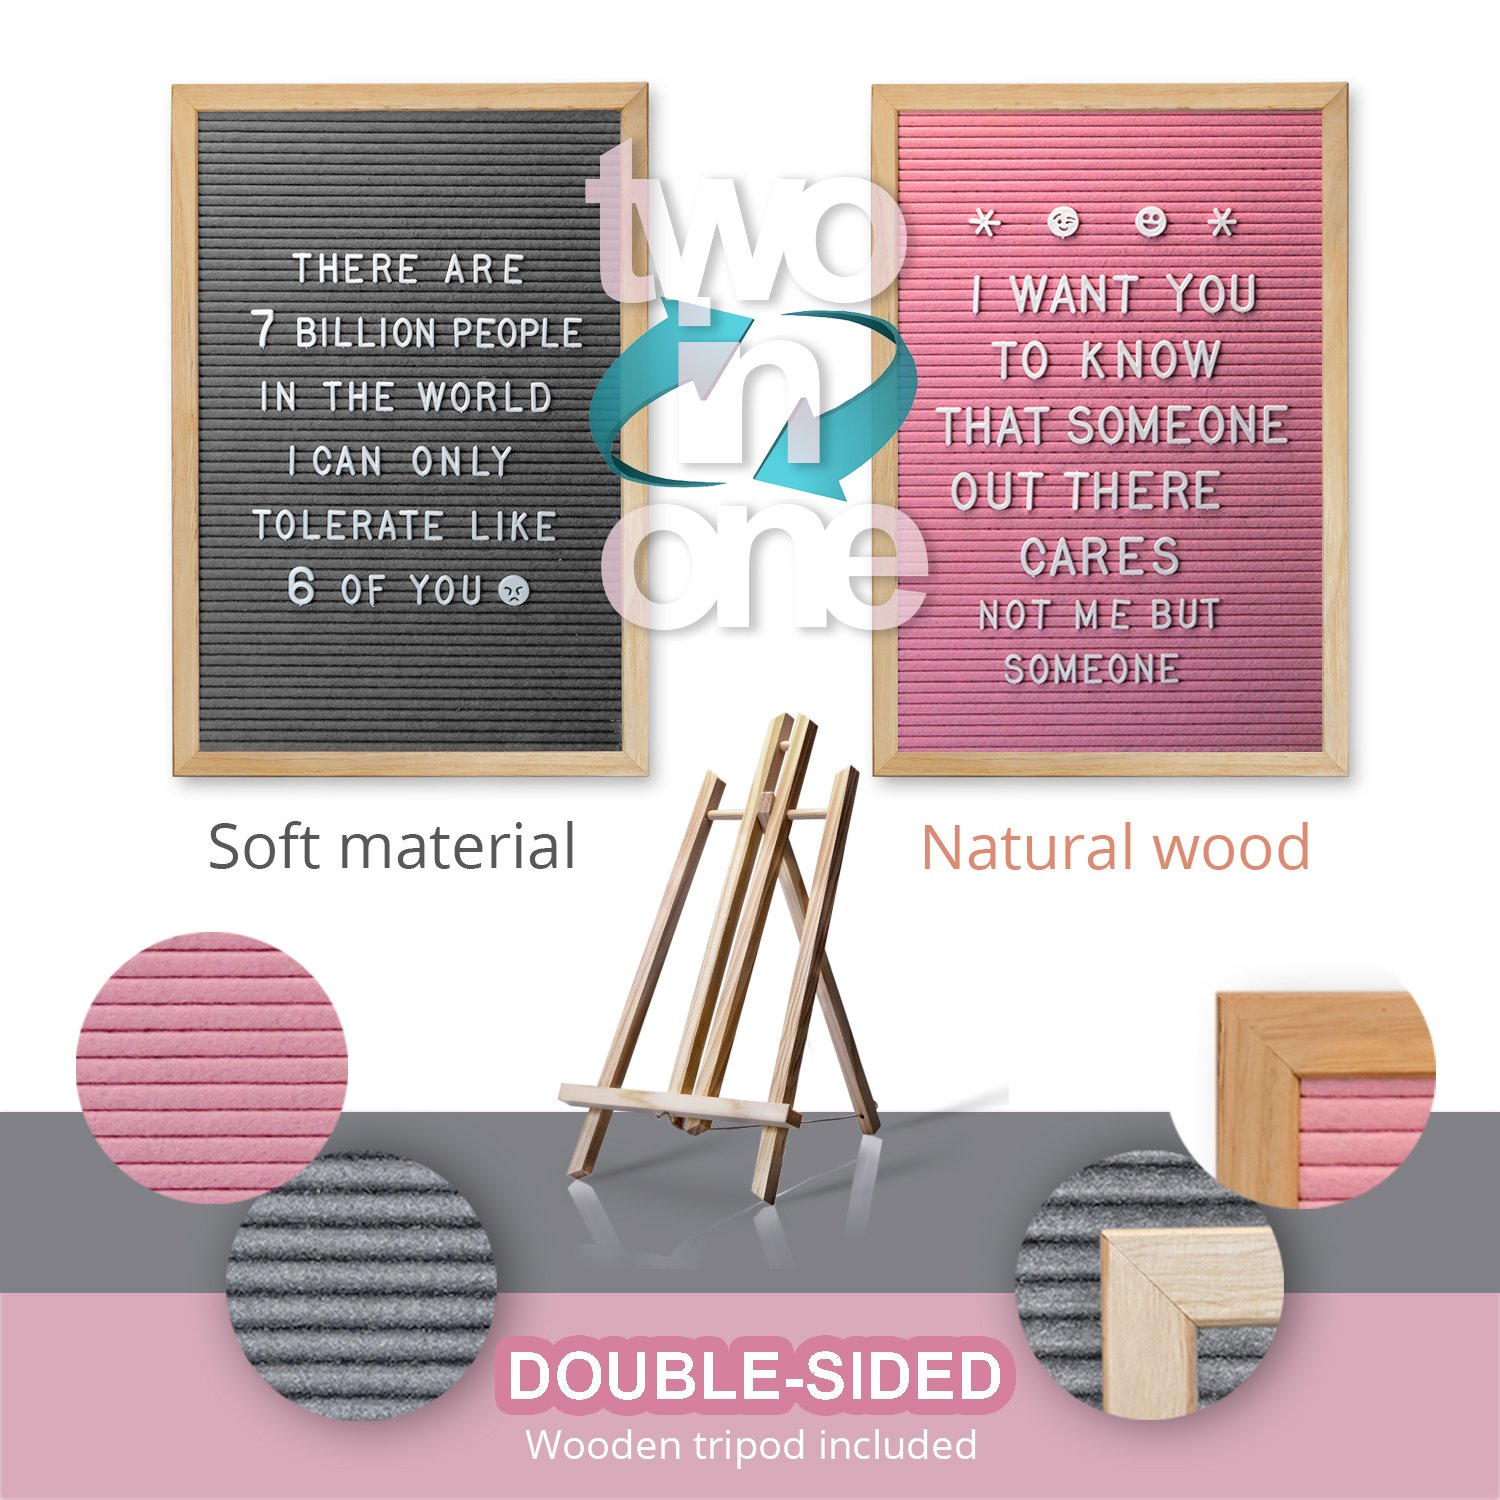 Double Sided Gray and Pink Felt Letter Board with Easel Stand 12 x 18 | 718 Changeable Characters Including 1 inch and ¾ Letters, Symbols, Emojis Hashtag + More | Hook to Hang | 2 Bags